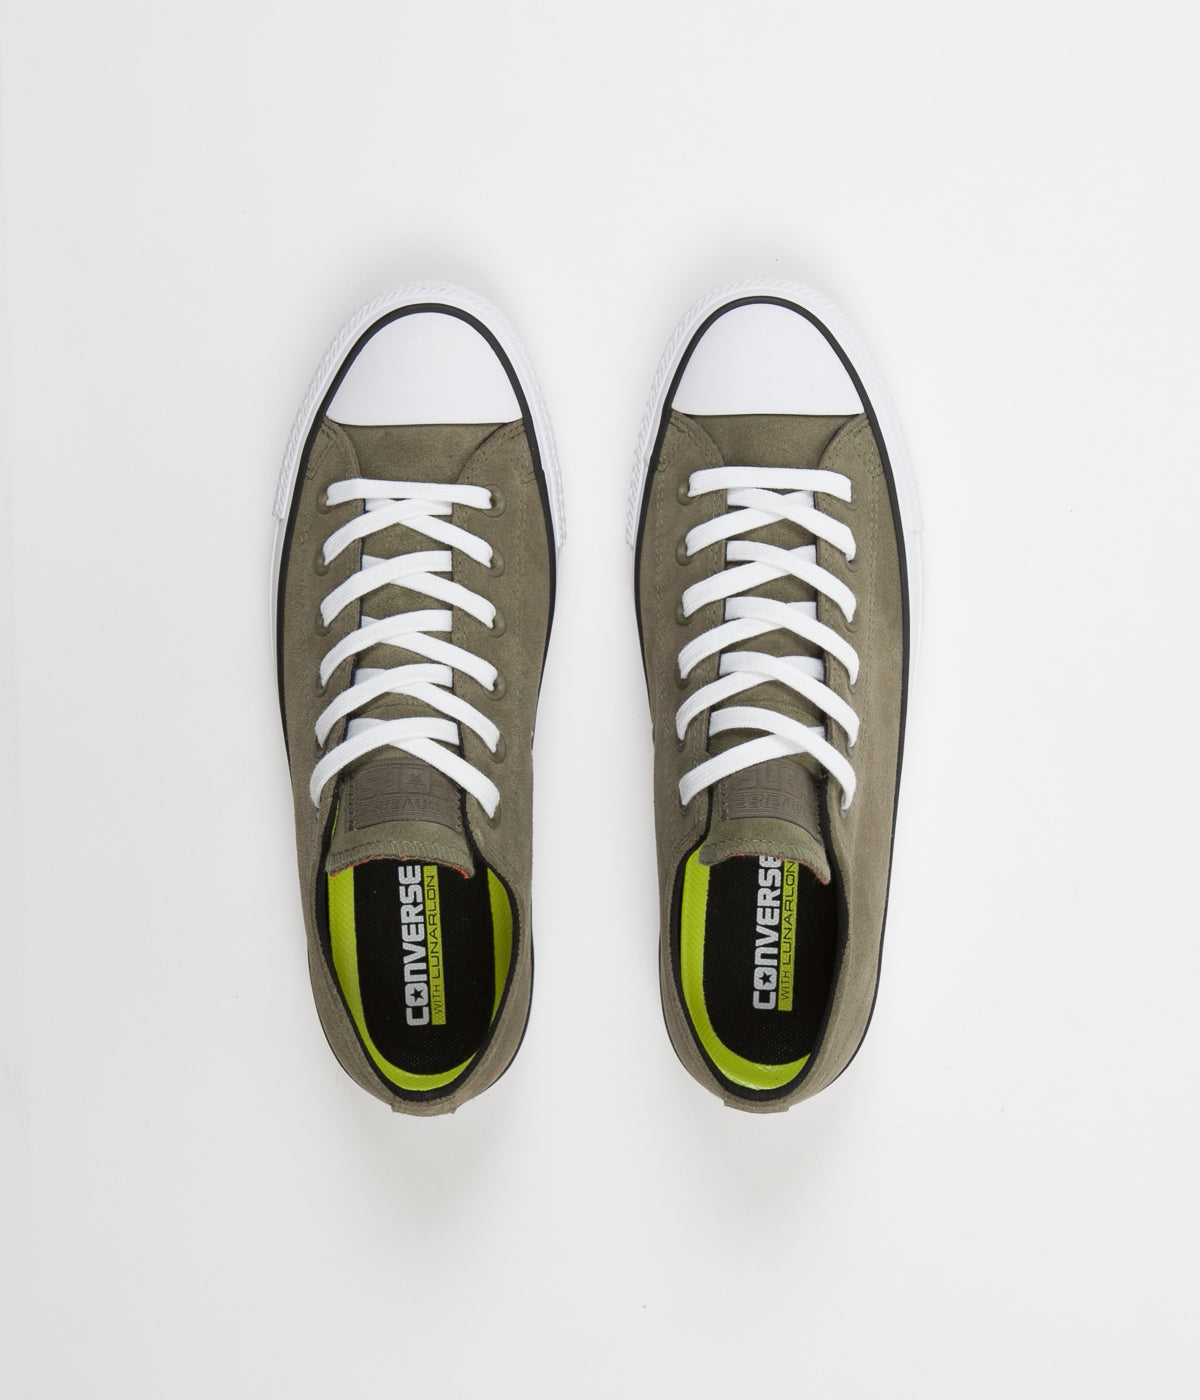 Converse CTAS Pro Ox Shoes - Medium Olive / Black